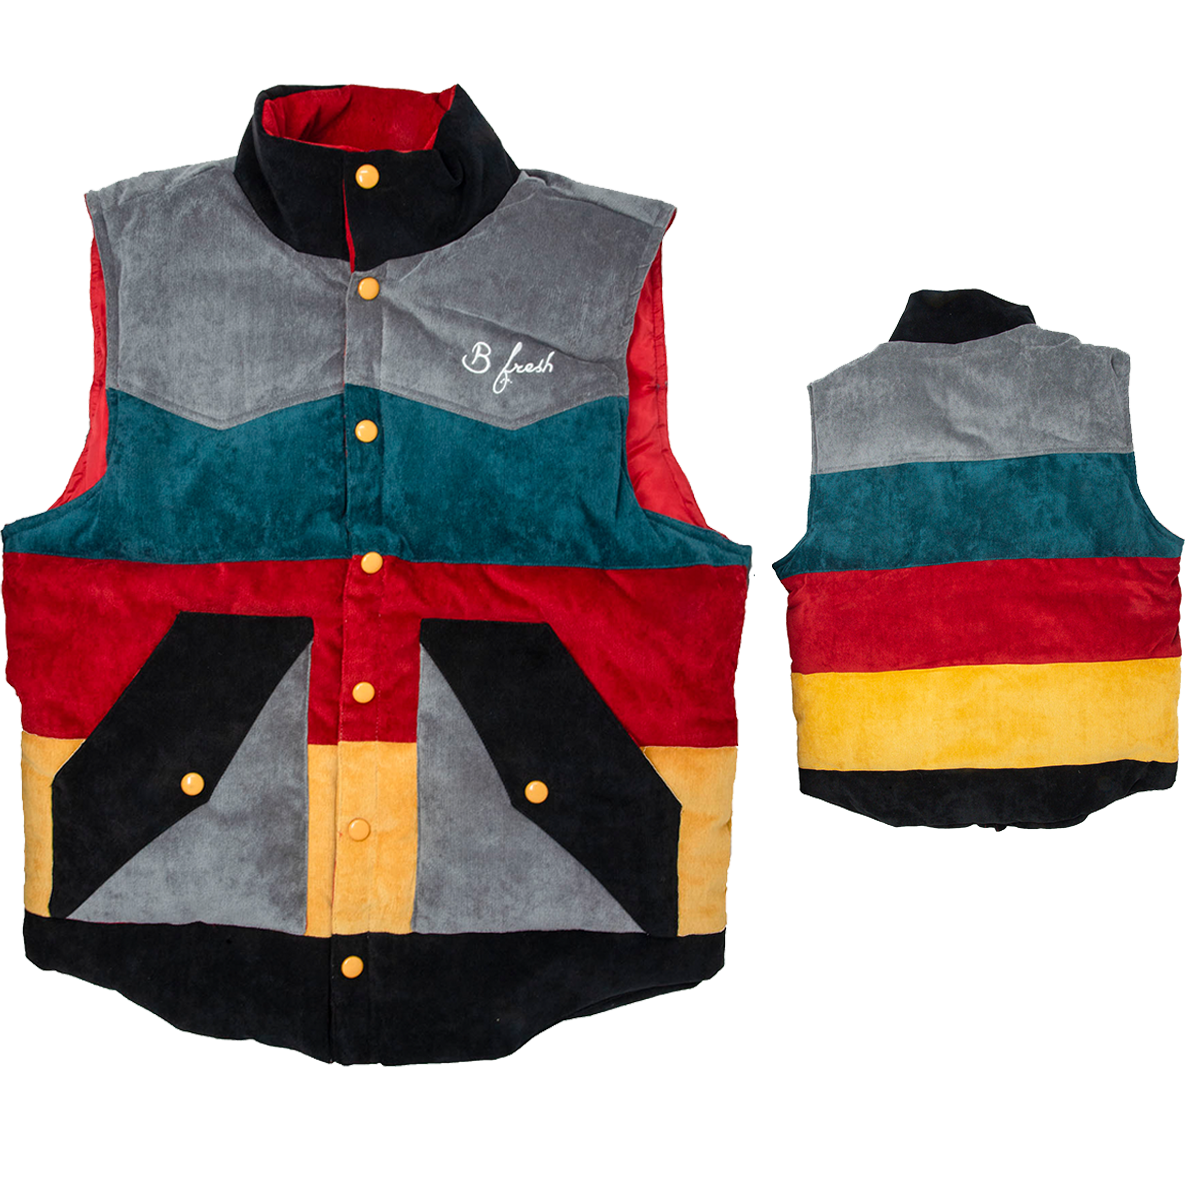 The Roy Vest - B Fresh